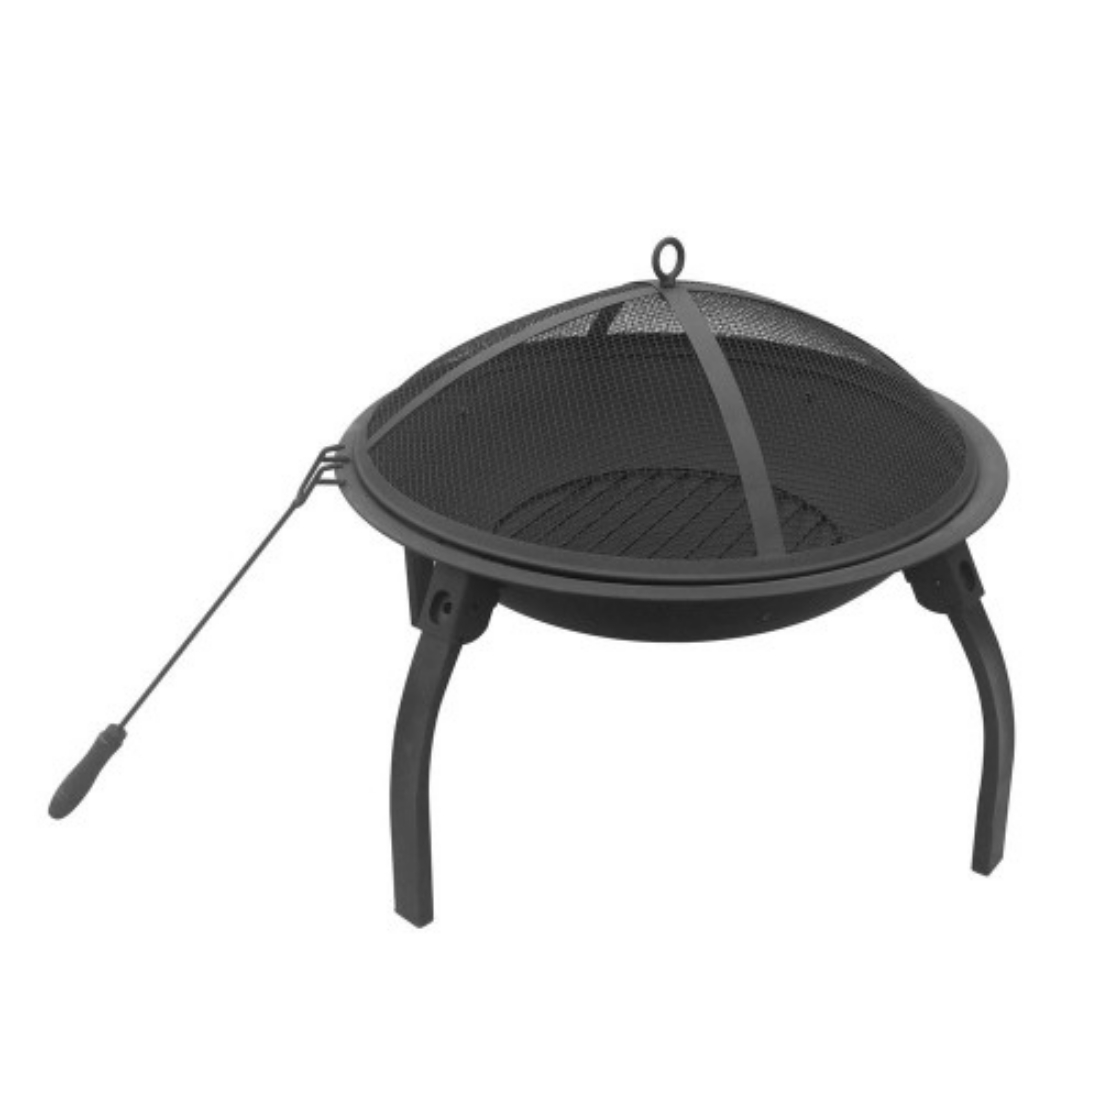 BEST SELLER! 22 Inch Portable Foldable Outdoor Fire Pit Fireplace Camping or Backyard